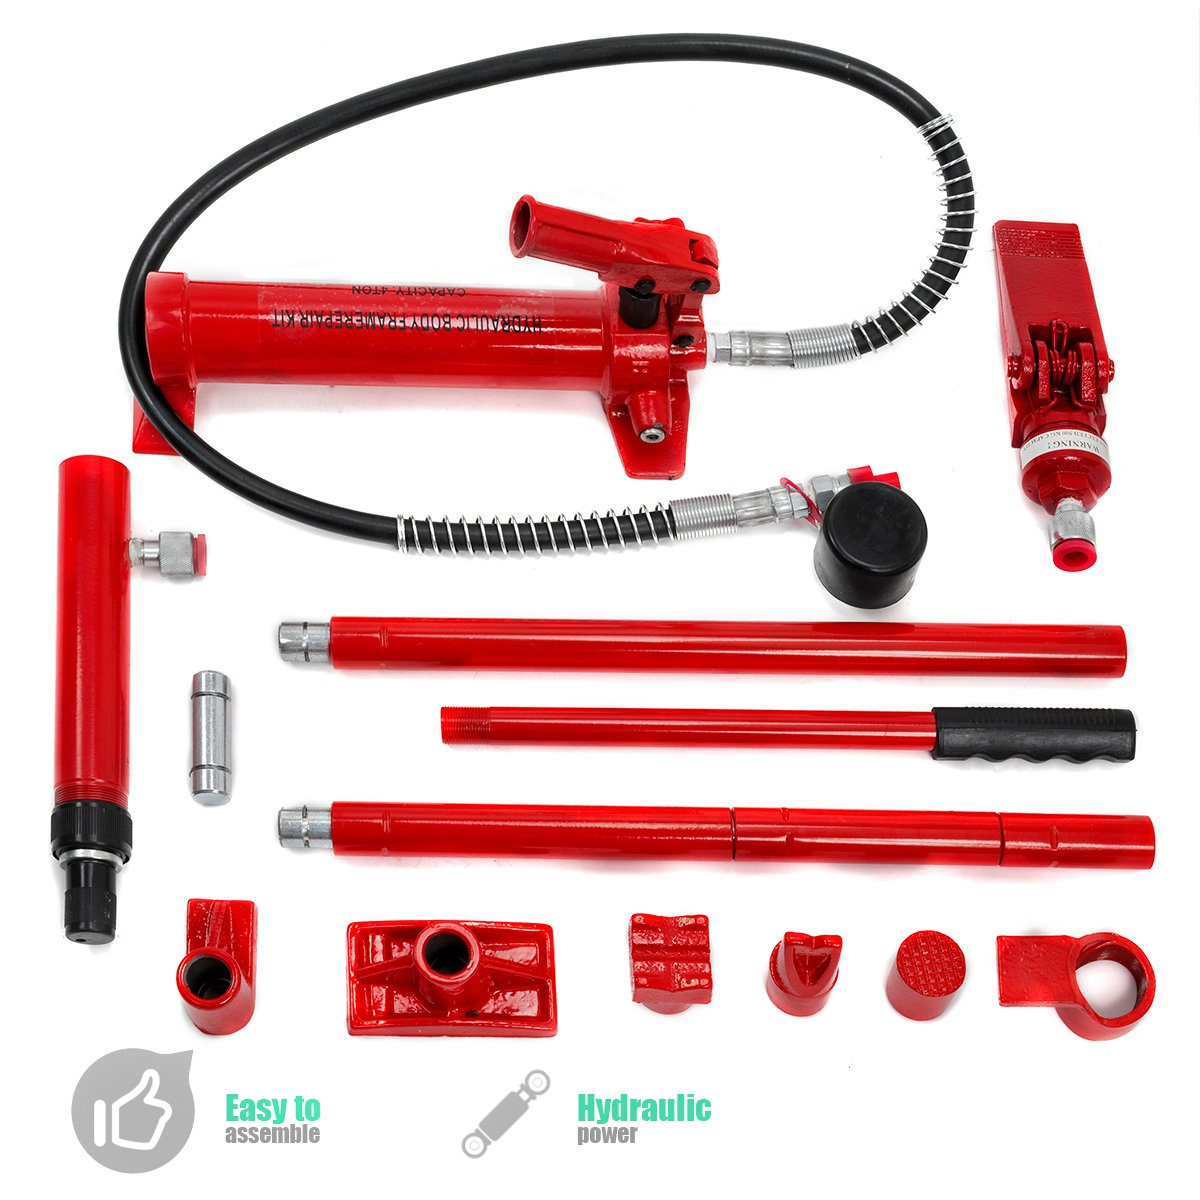 XtremepowerUS Hydraulic Porta Power Auto Body Frame Repair Kit (10 Ton or 4 Ton) by XtremepowerUS (Image #3)